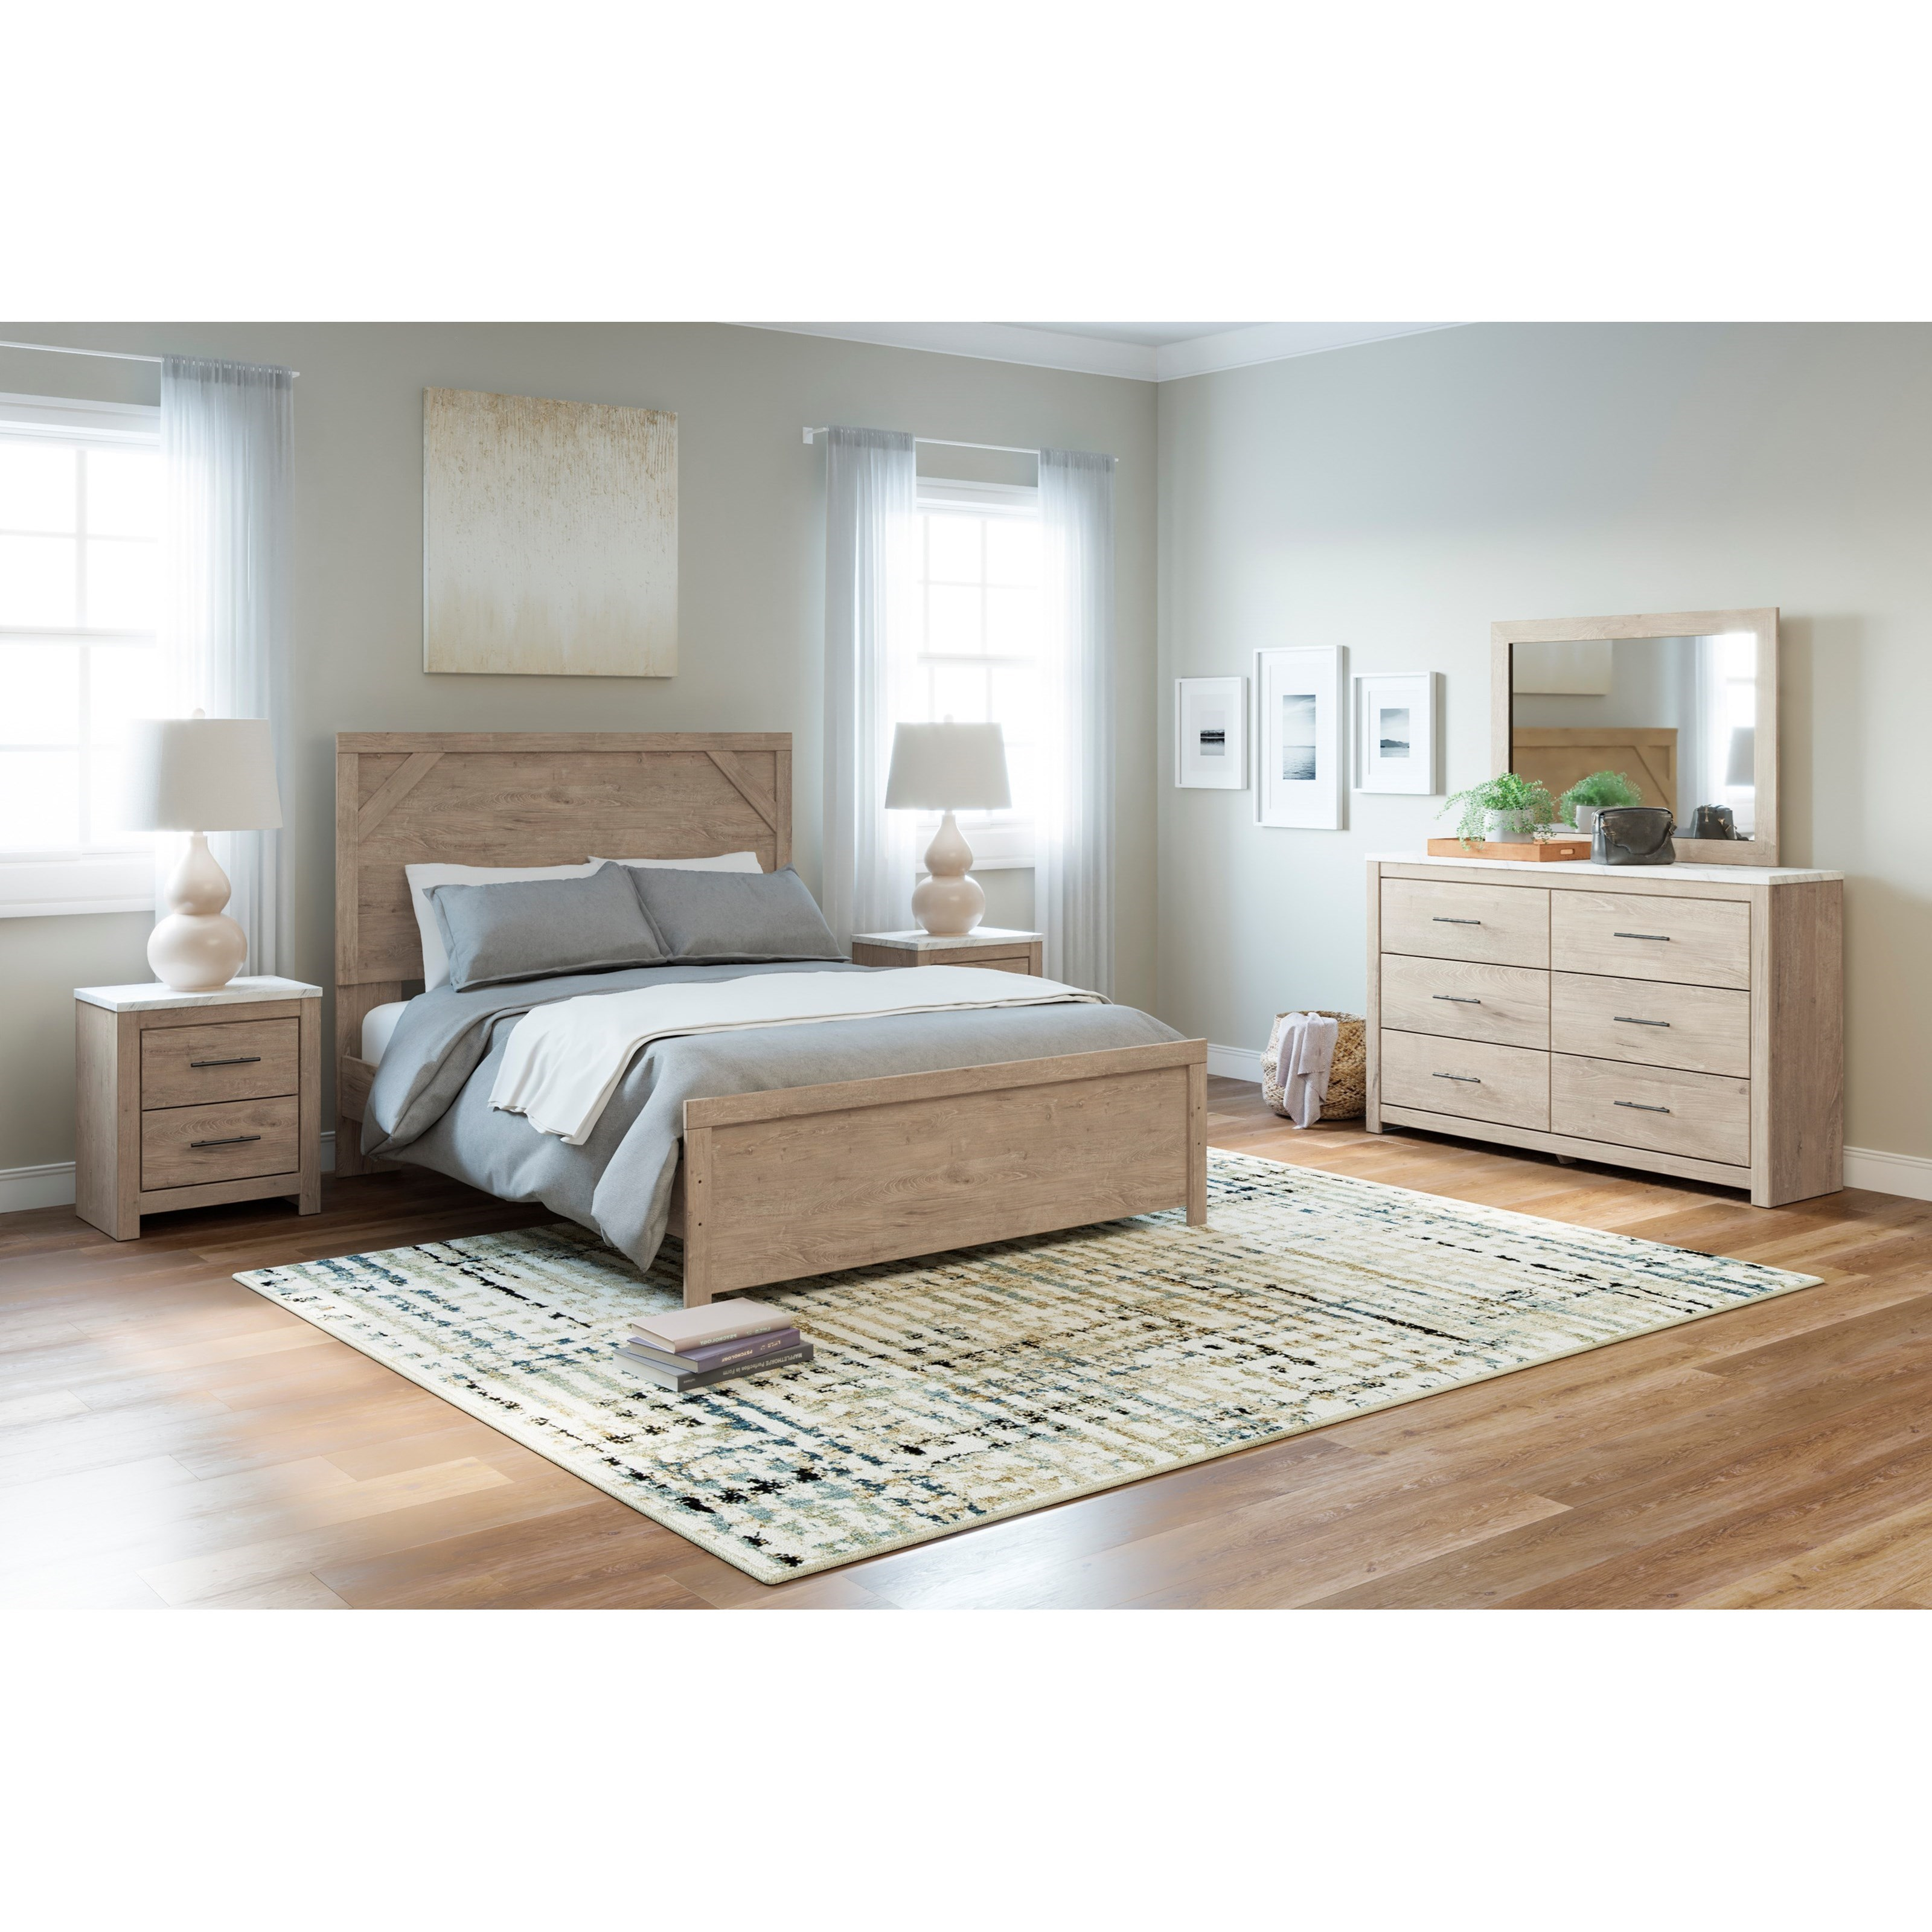 Senniberg Queen Bedroom Group at Sadler's Home Furnishings